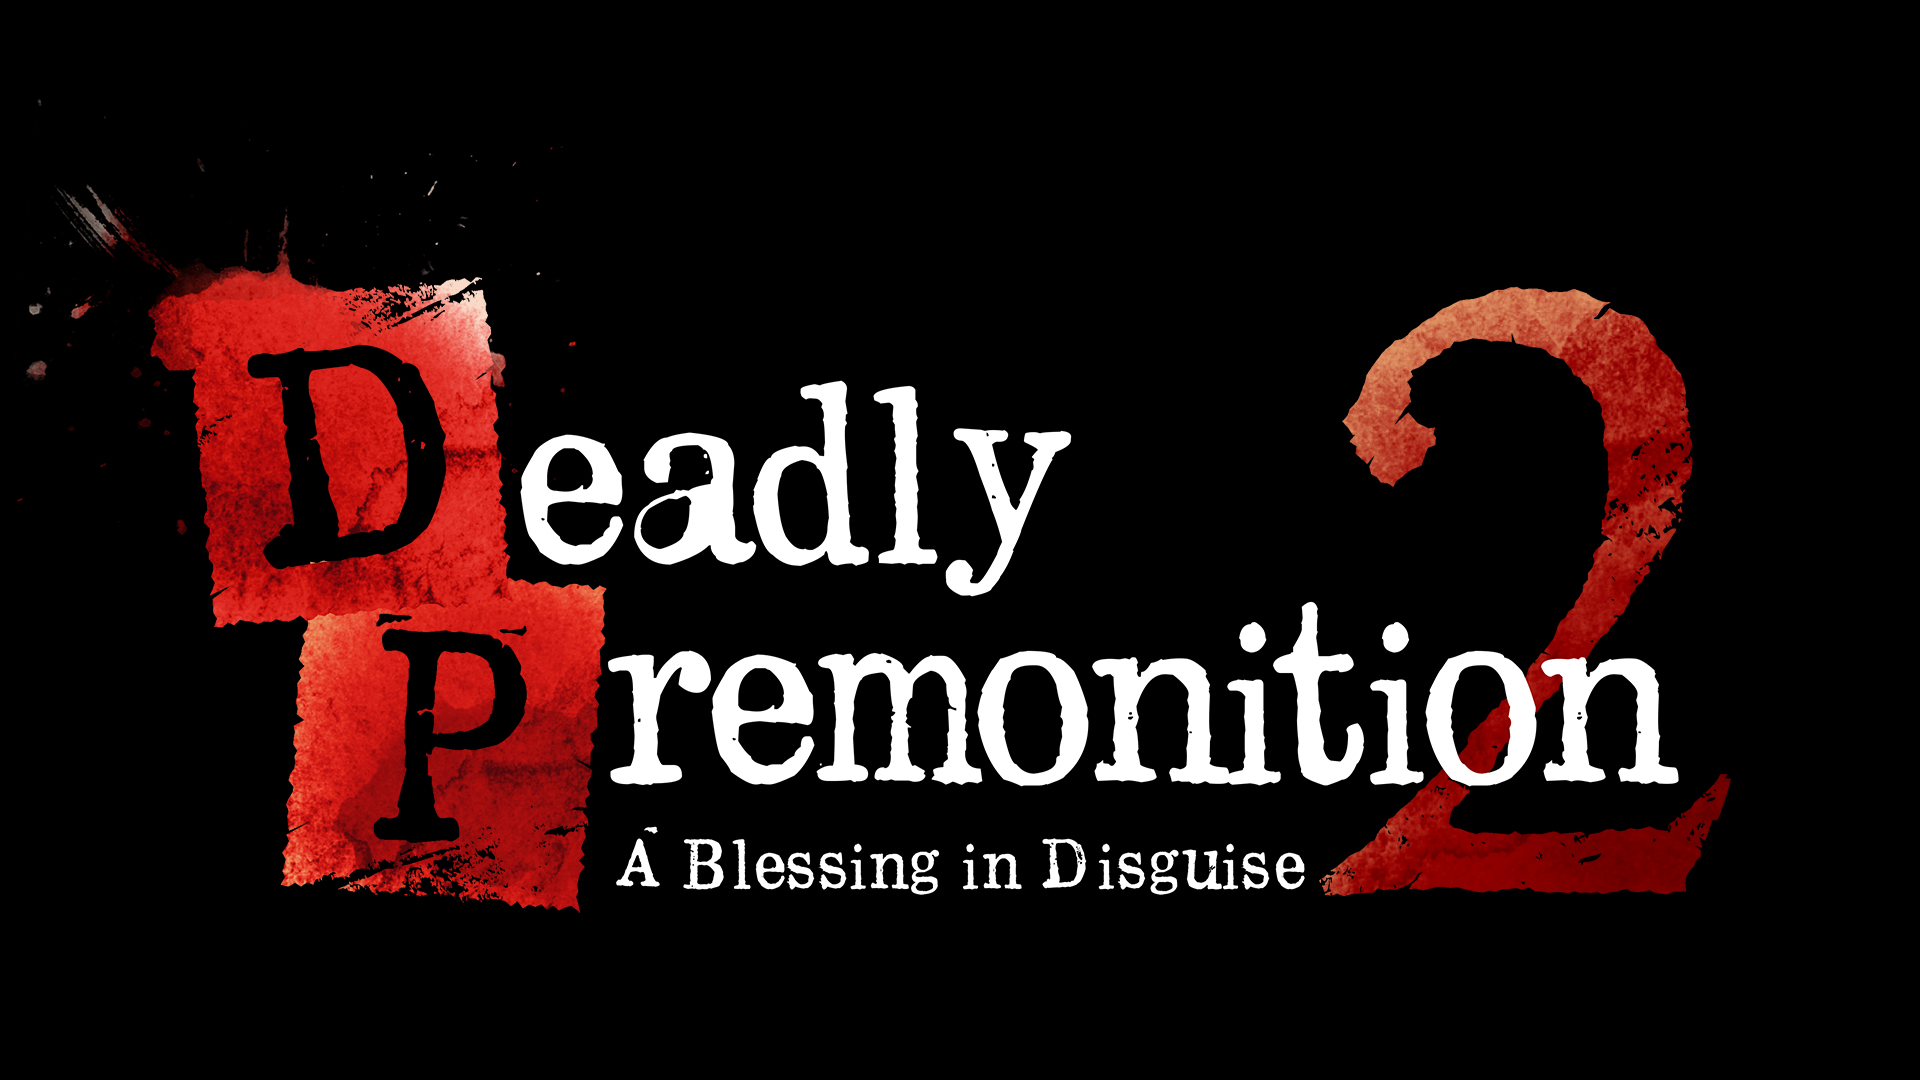 Deadly Premonition 2 A Blessing In Disguise Announced 1920x1080